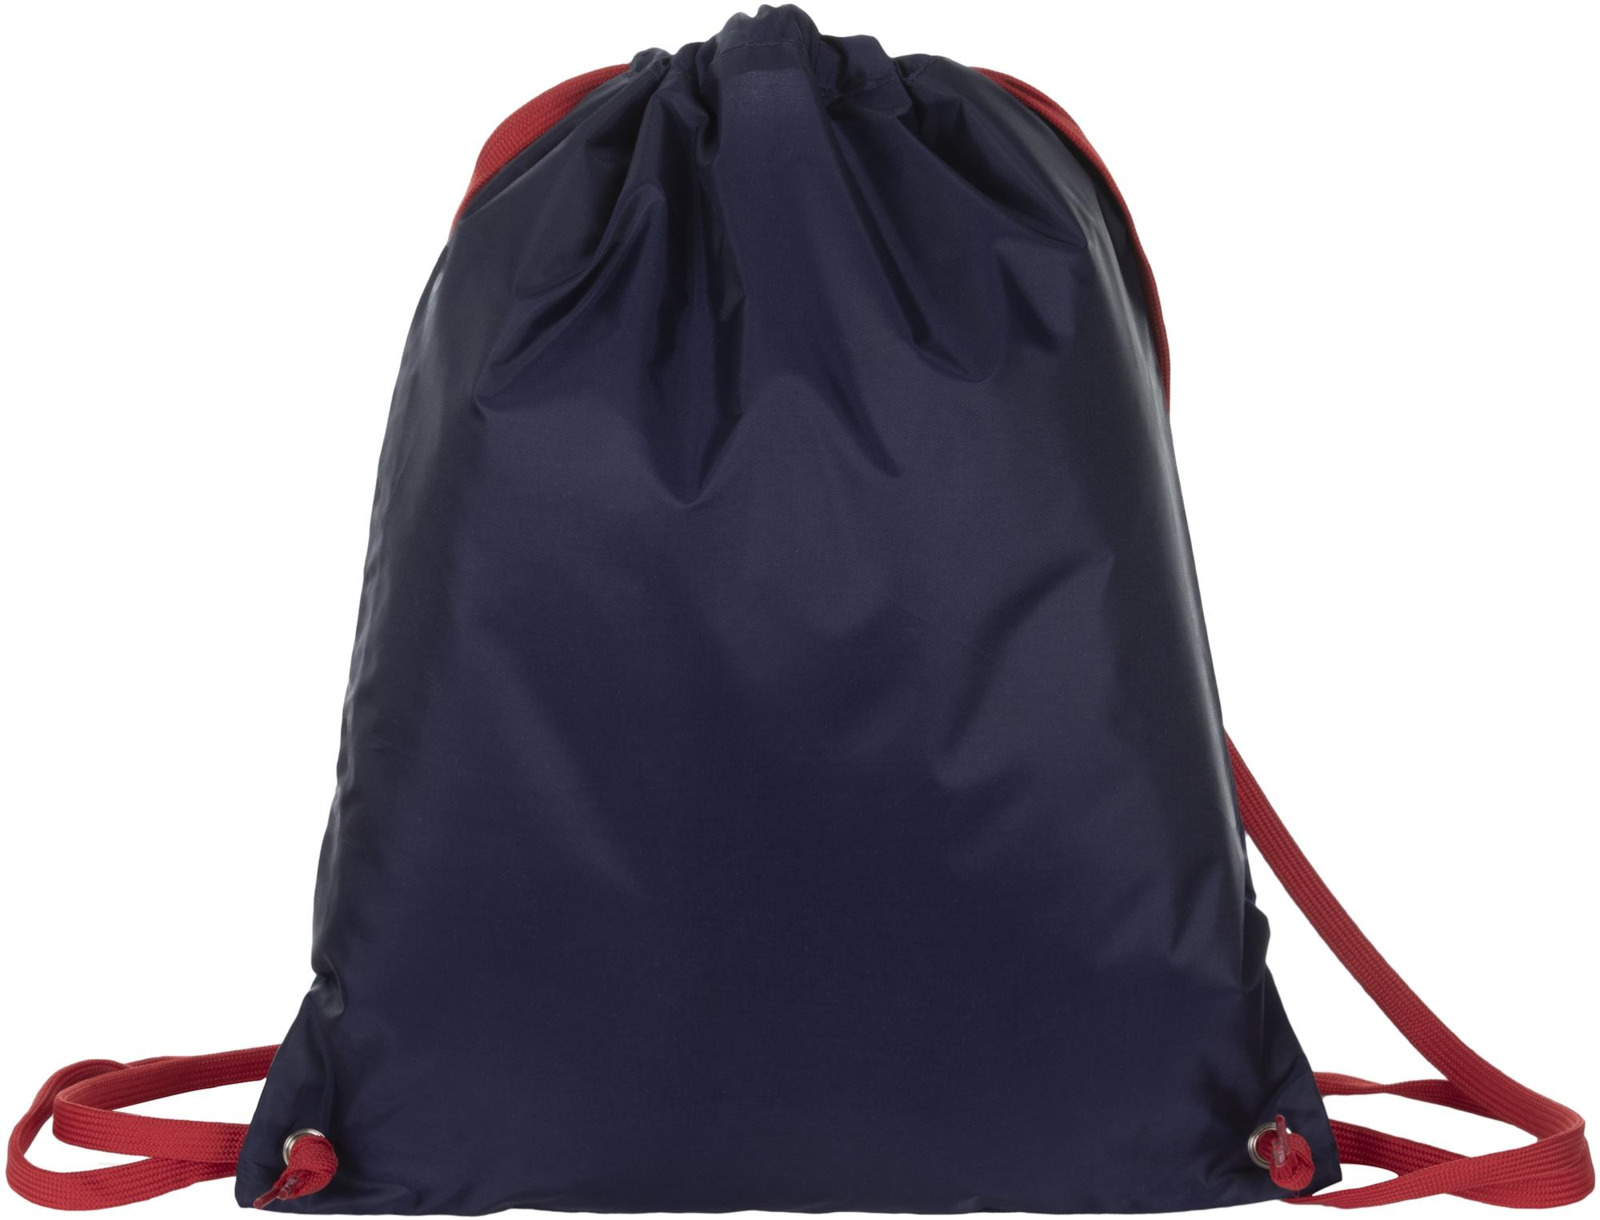 Сумка спортивная Fila Coated Bag, S19AFLACU01-M1, синий Fila